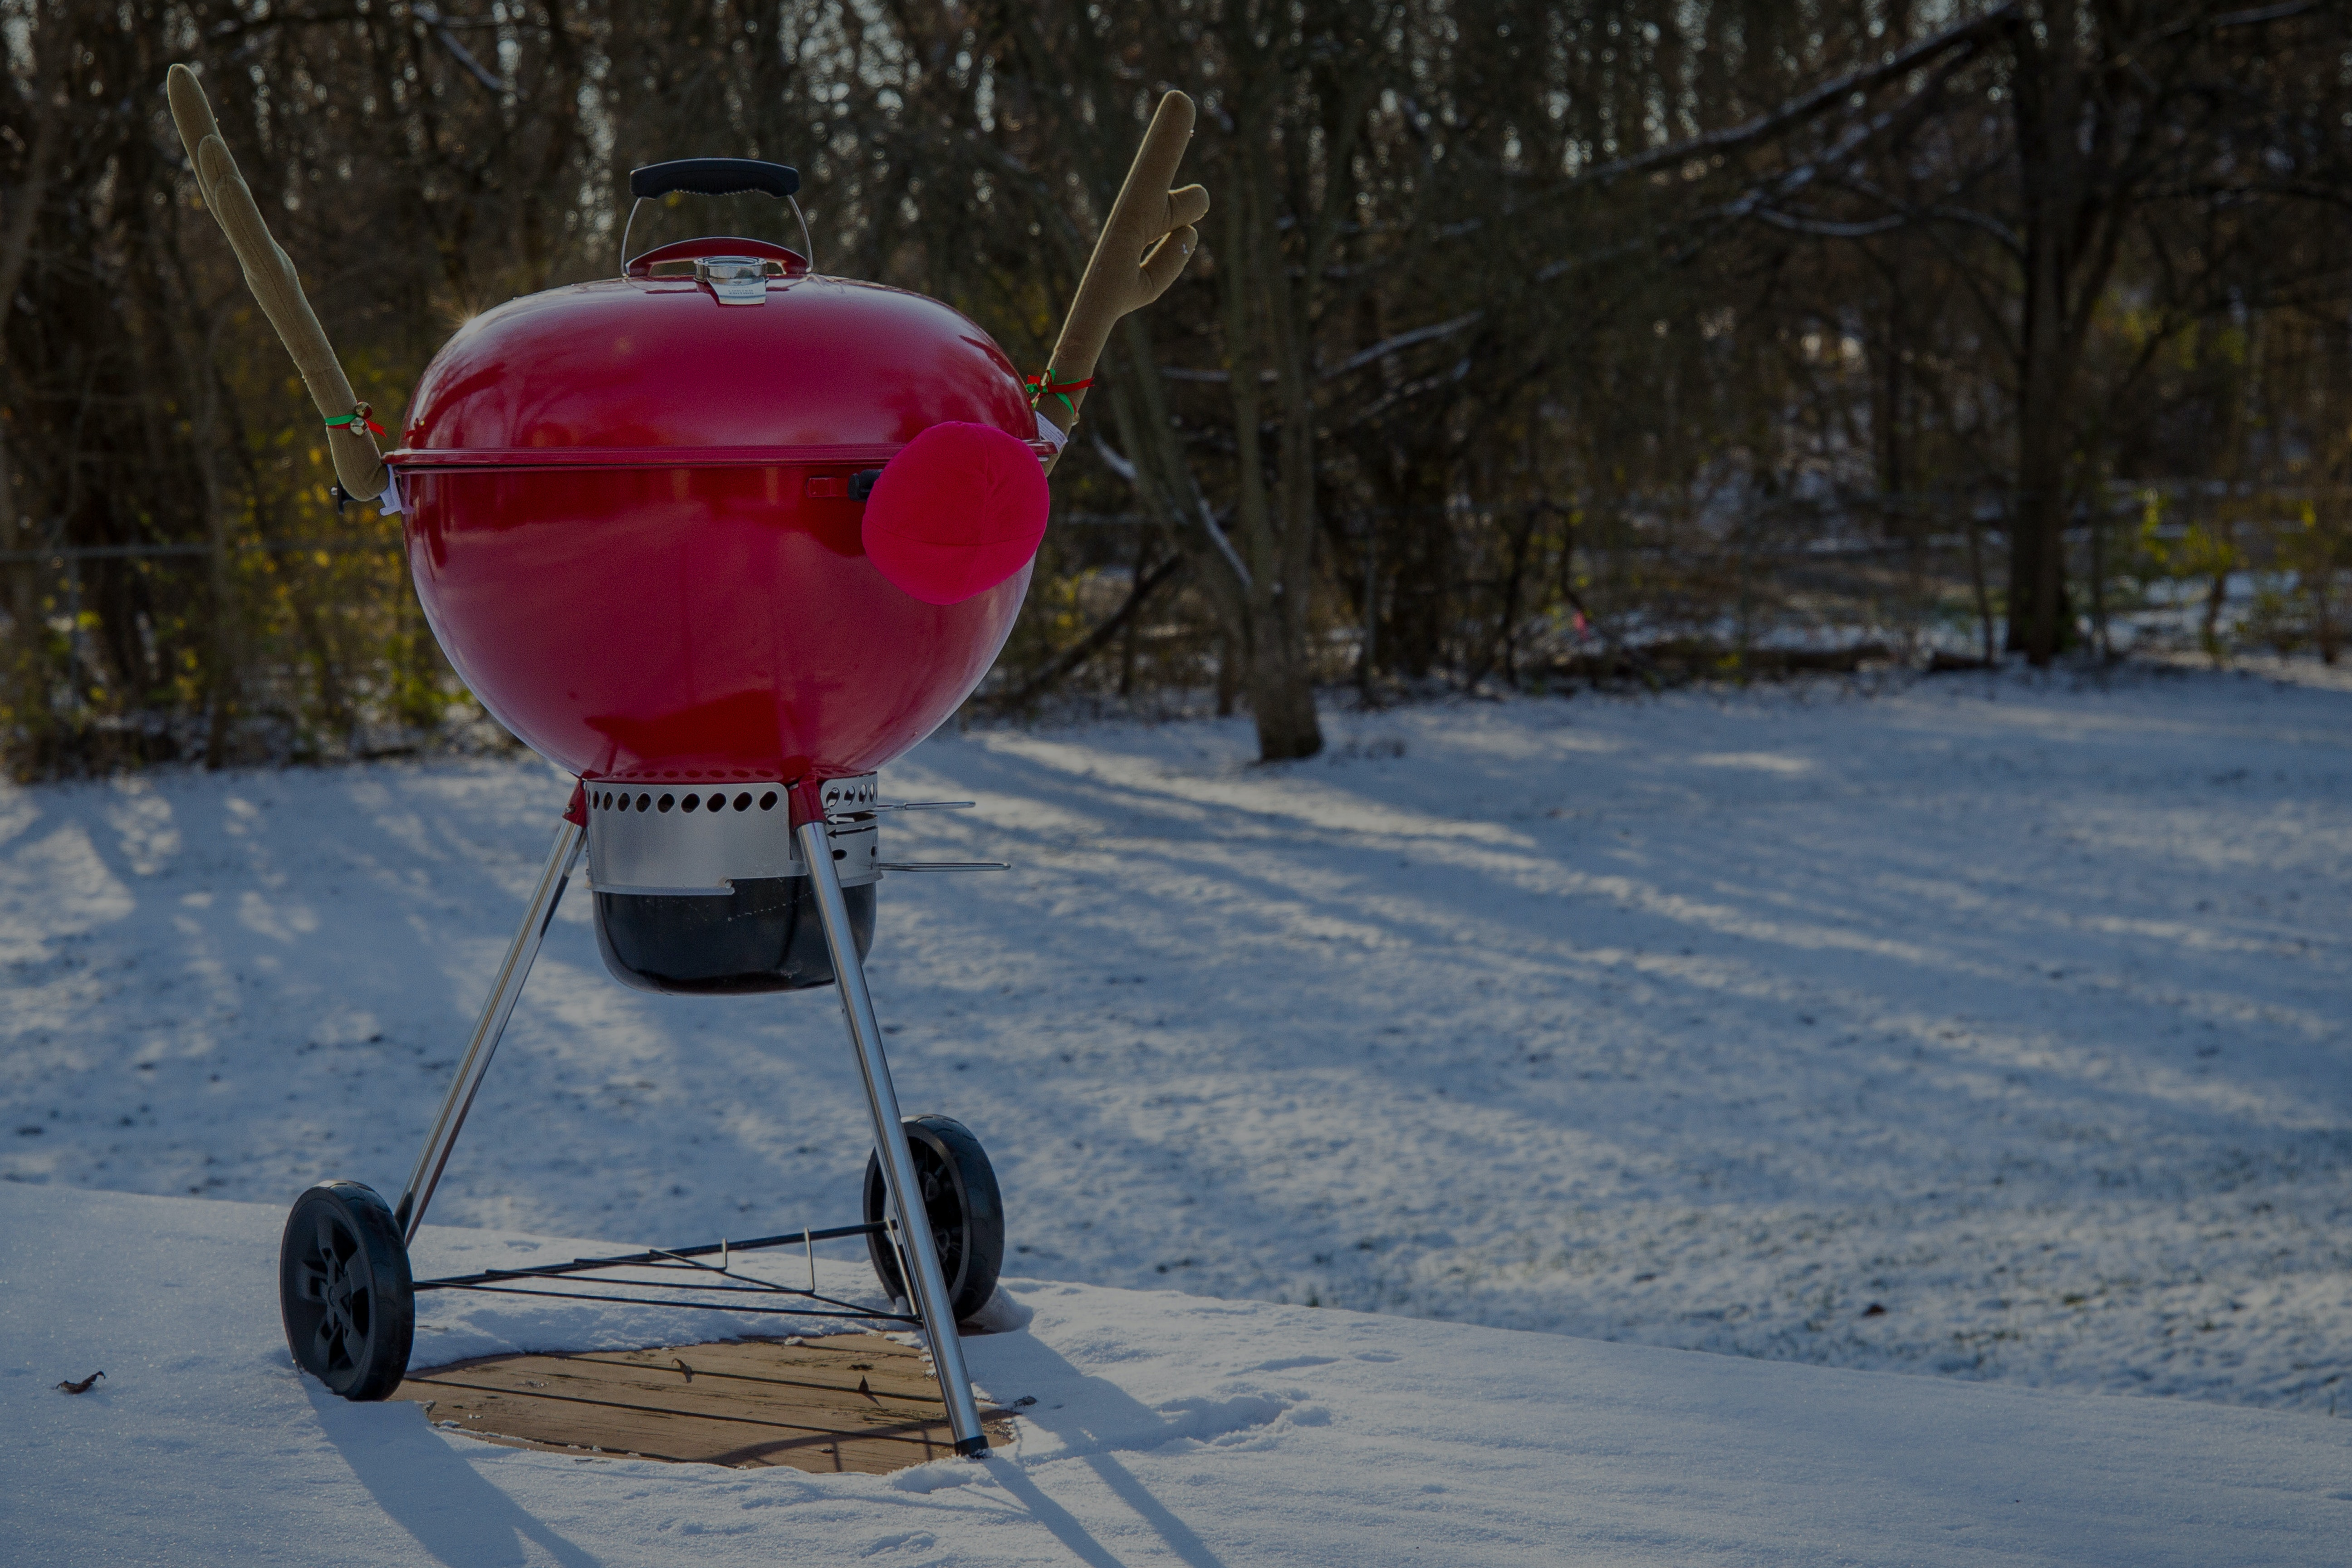 Charcoal still burns in the winter